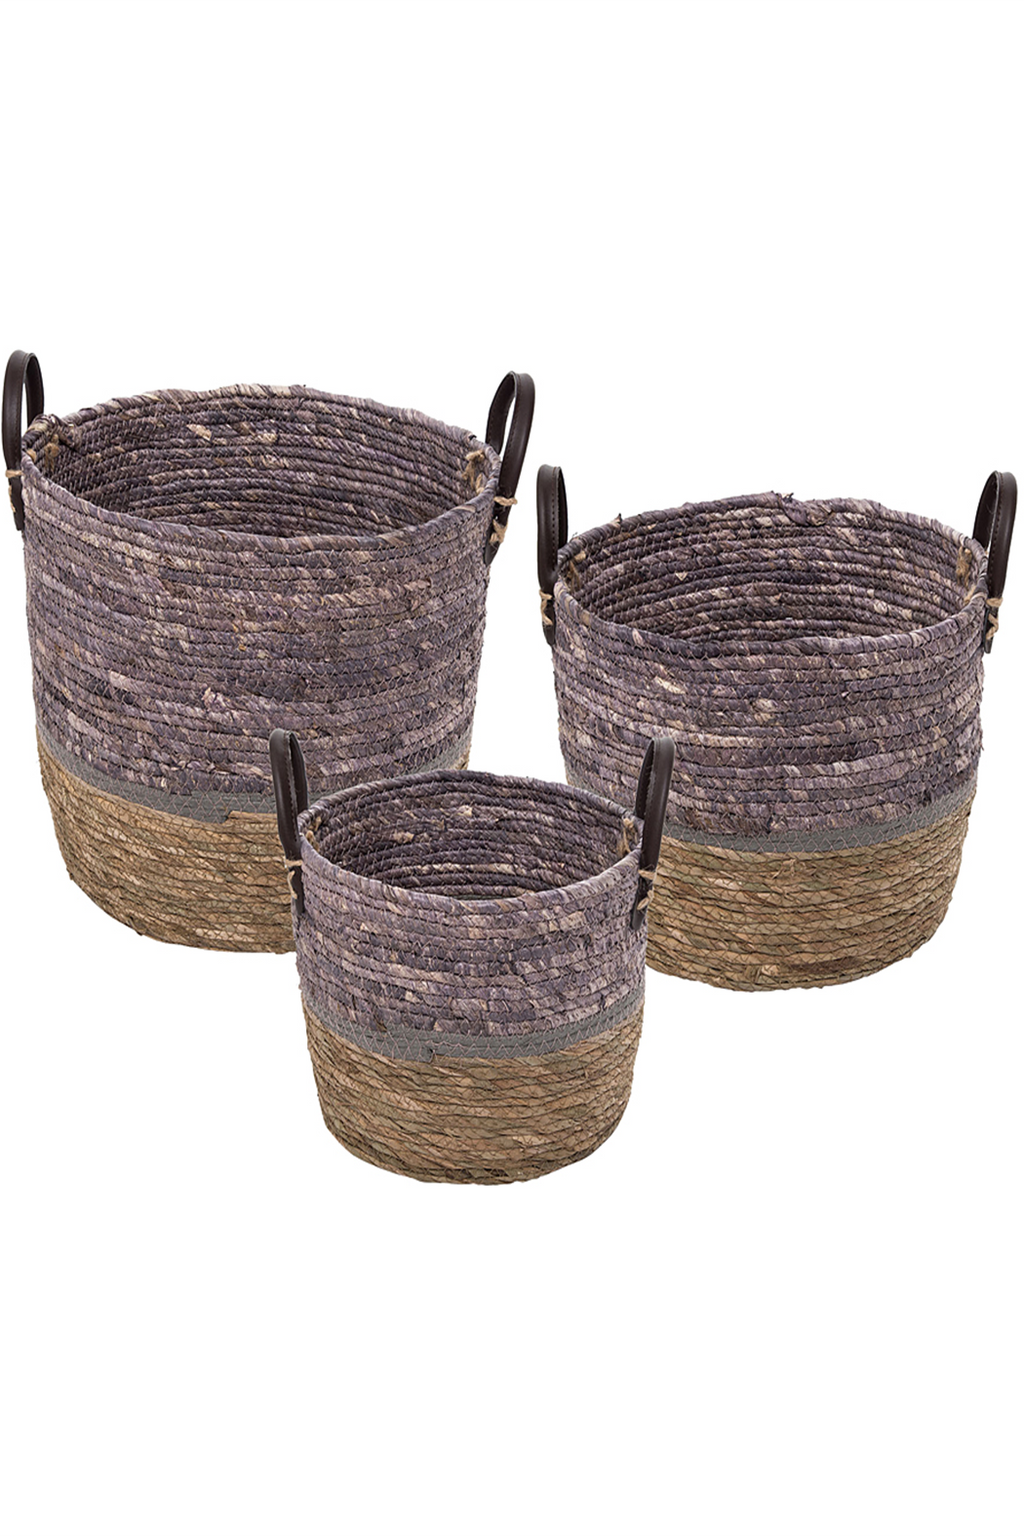 Foreside Cattail Handled Baskets